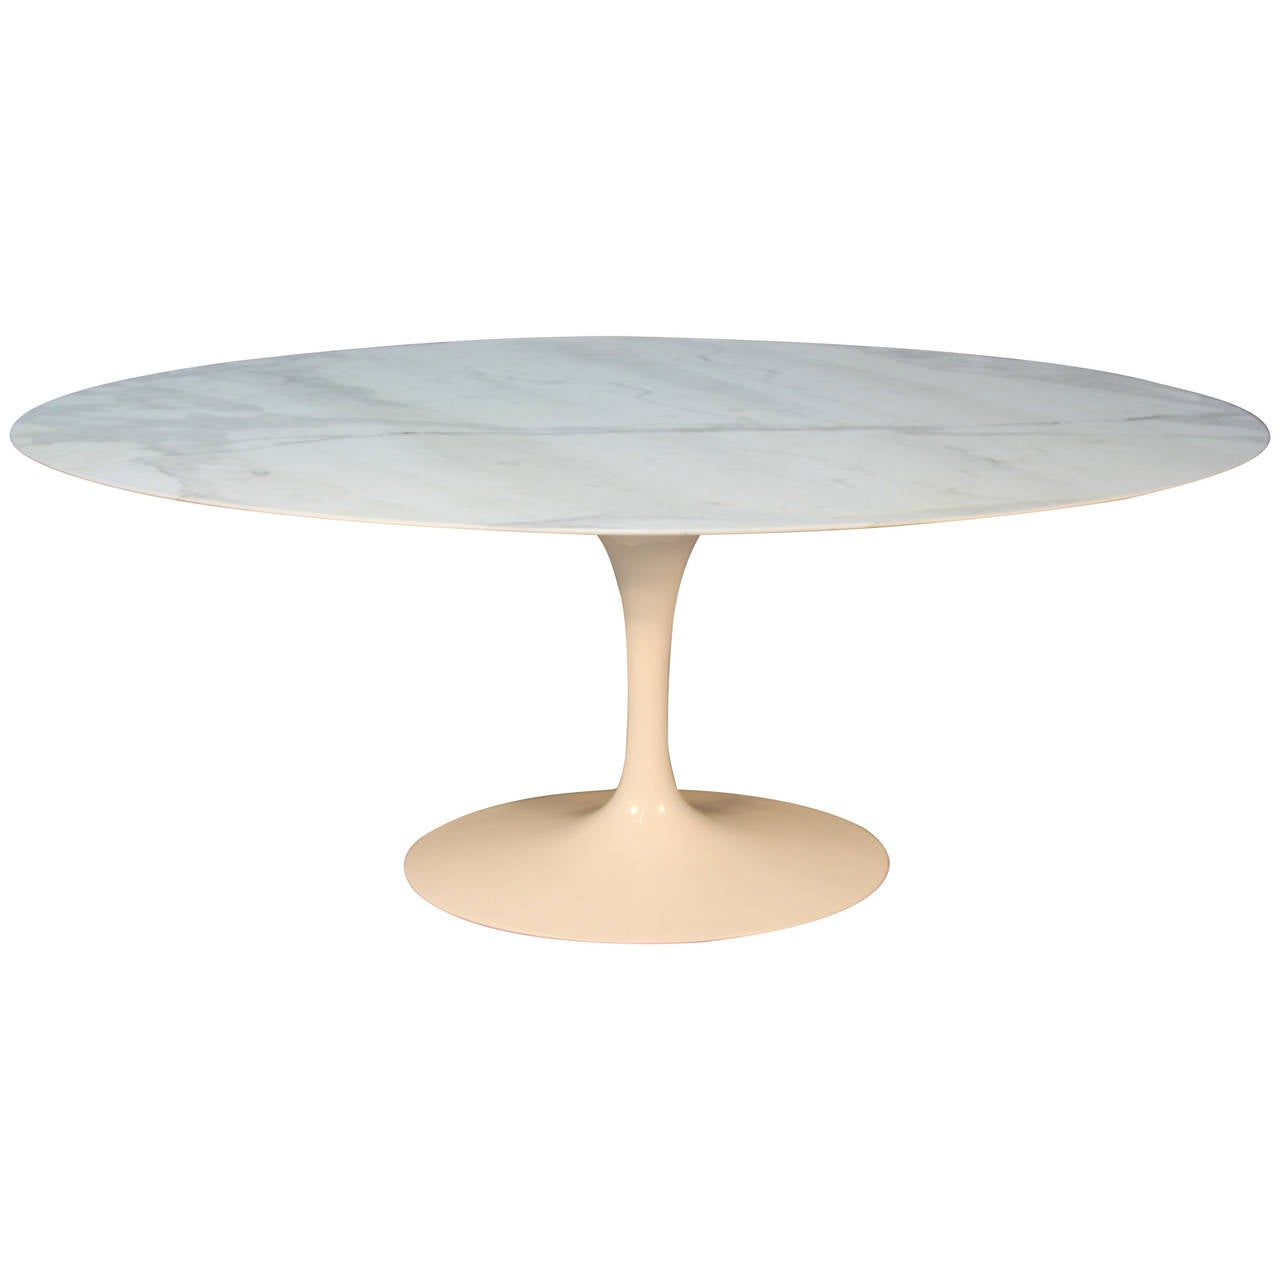 Saarinen oval marble top dining table at 1stdibs Oval dining table